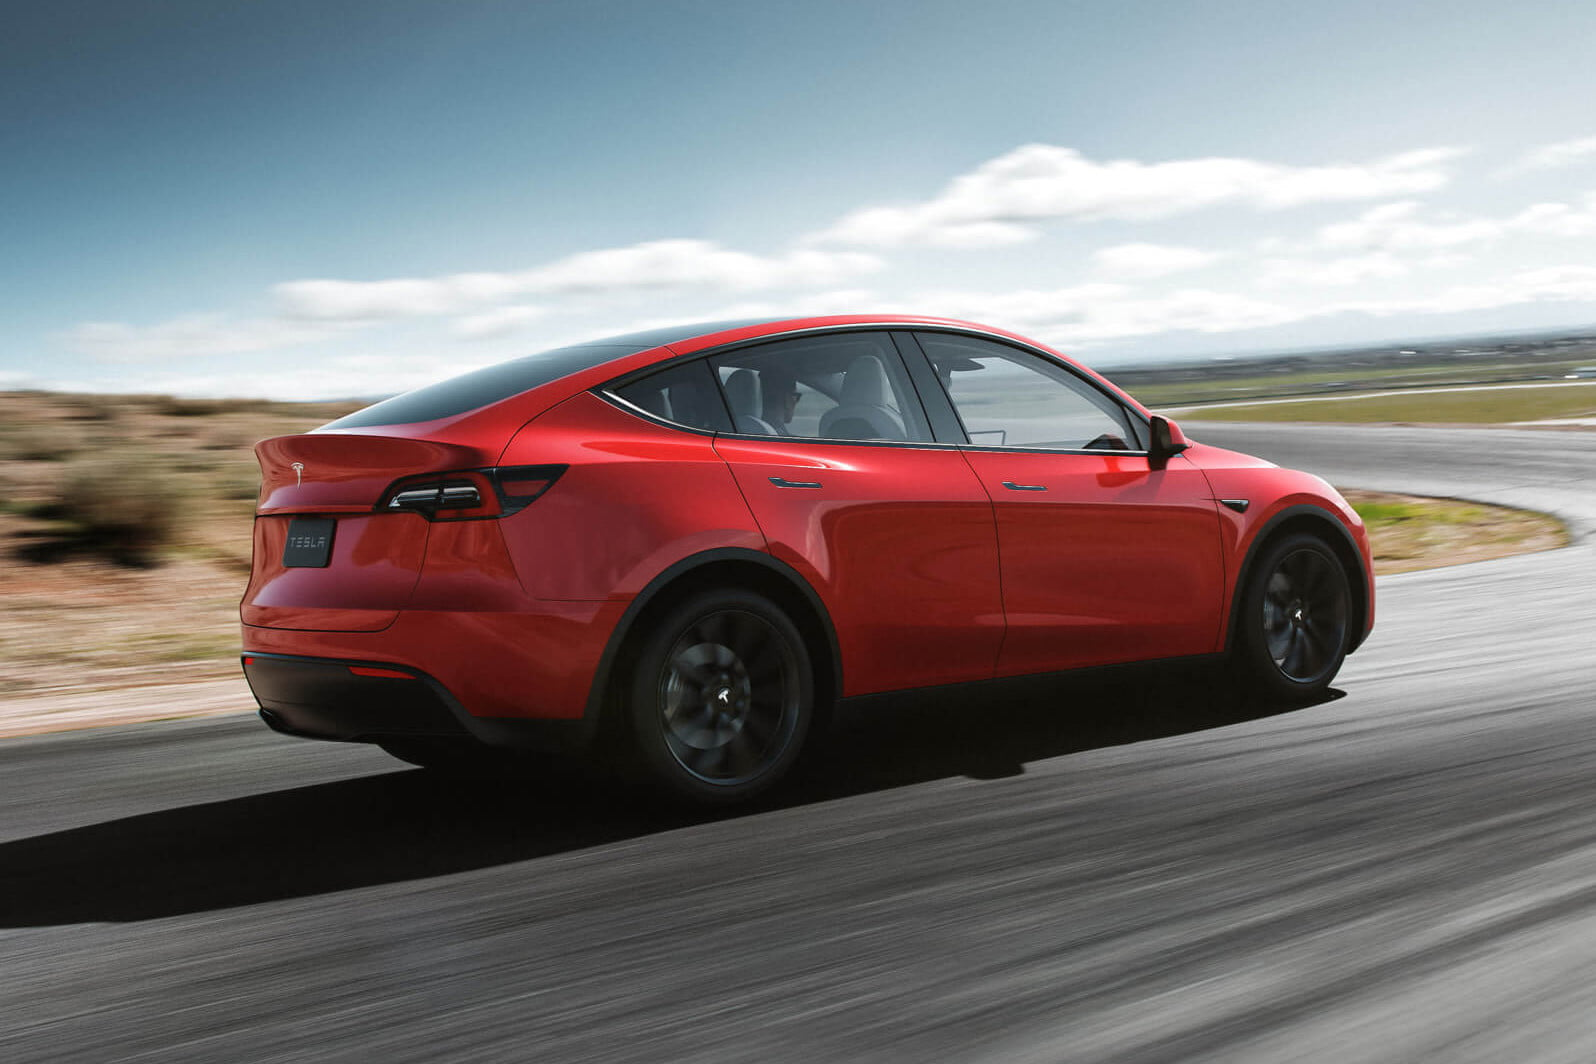 Tesla owners accuse their cars of sudden unintended acceleration. Is it true?